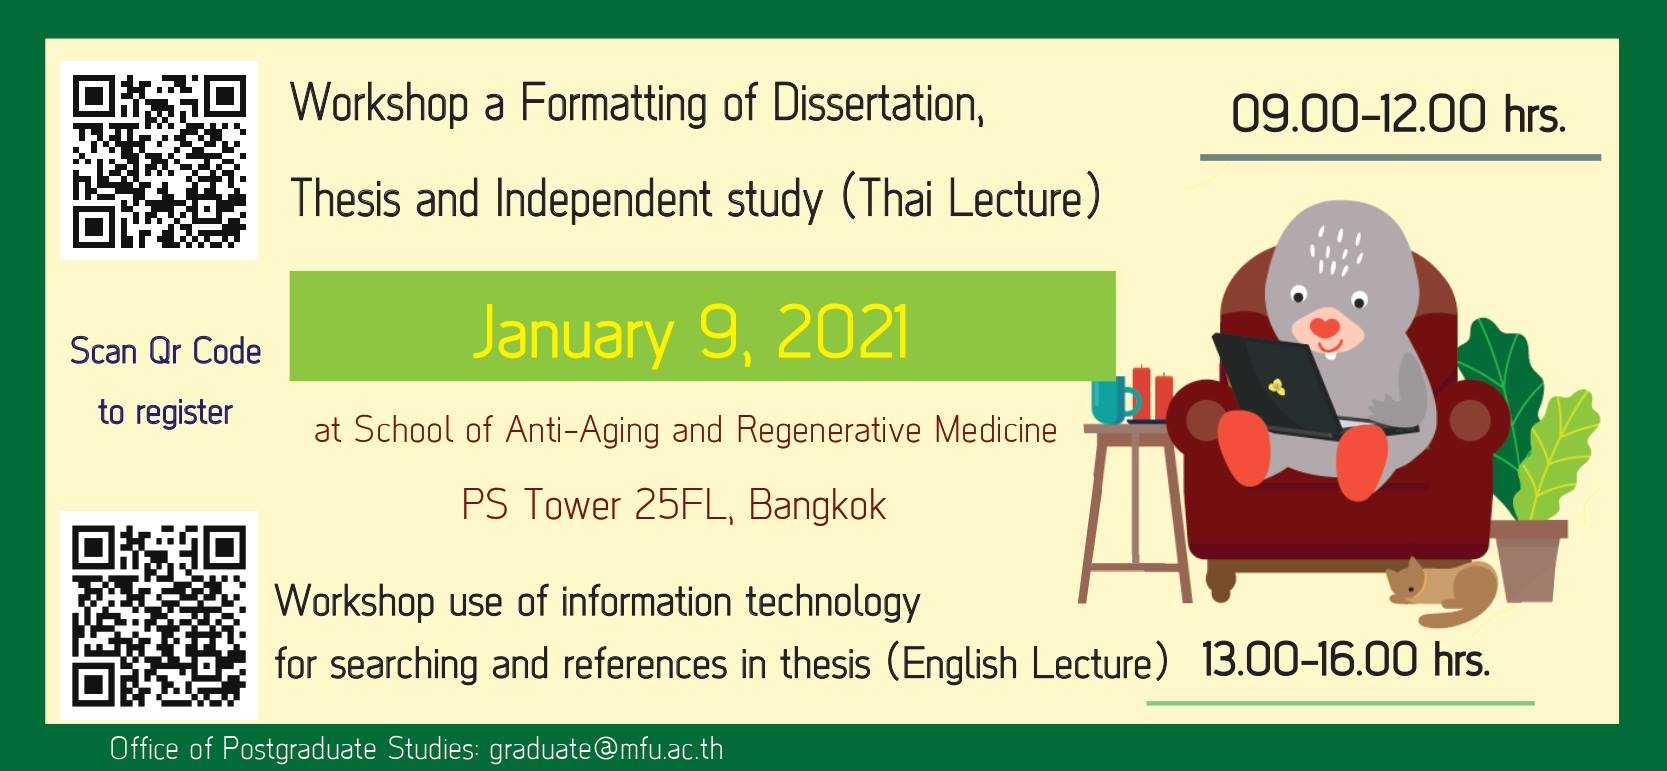 Workshop a Formatting of Dissertation, Thesis and Independent study and Workshop use of information technology for searching and references in thesis (Bangkok)